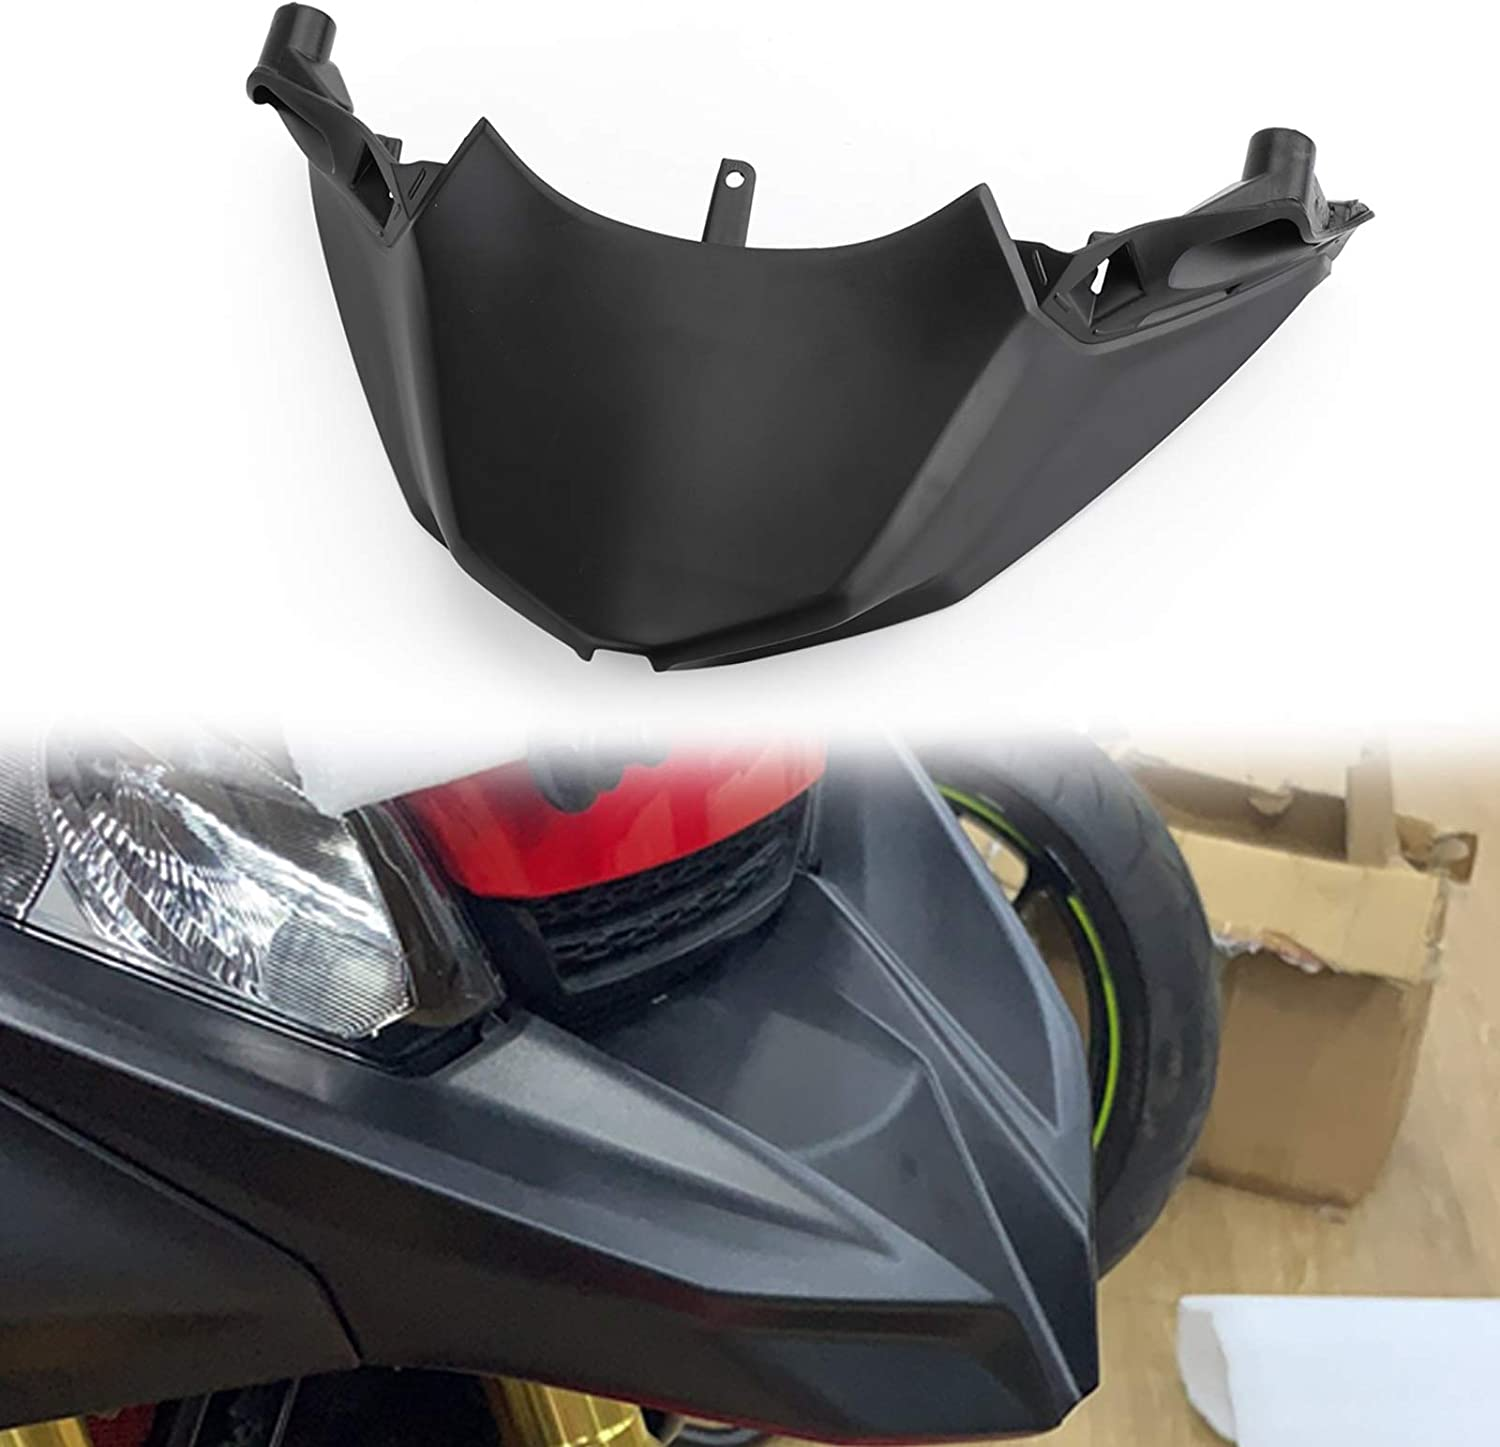 Moto Plastic Front Fender Beak Nose Extension for H-O-N-D-A X-ADV 750 2017 2018 2019 Artudatech Motorcycle Front Fender Beak Extension